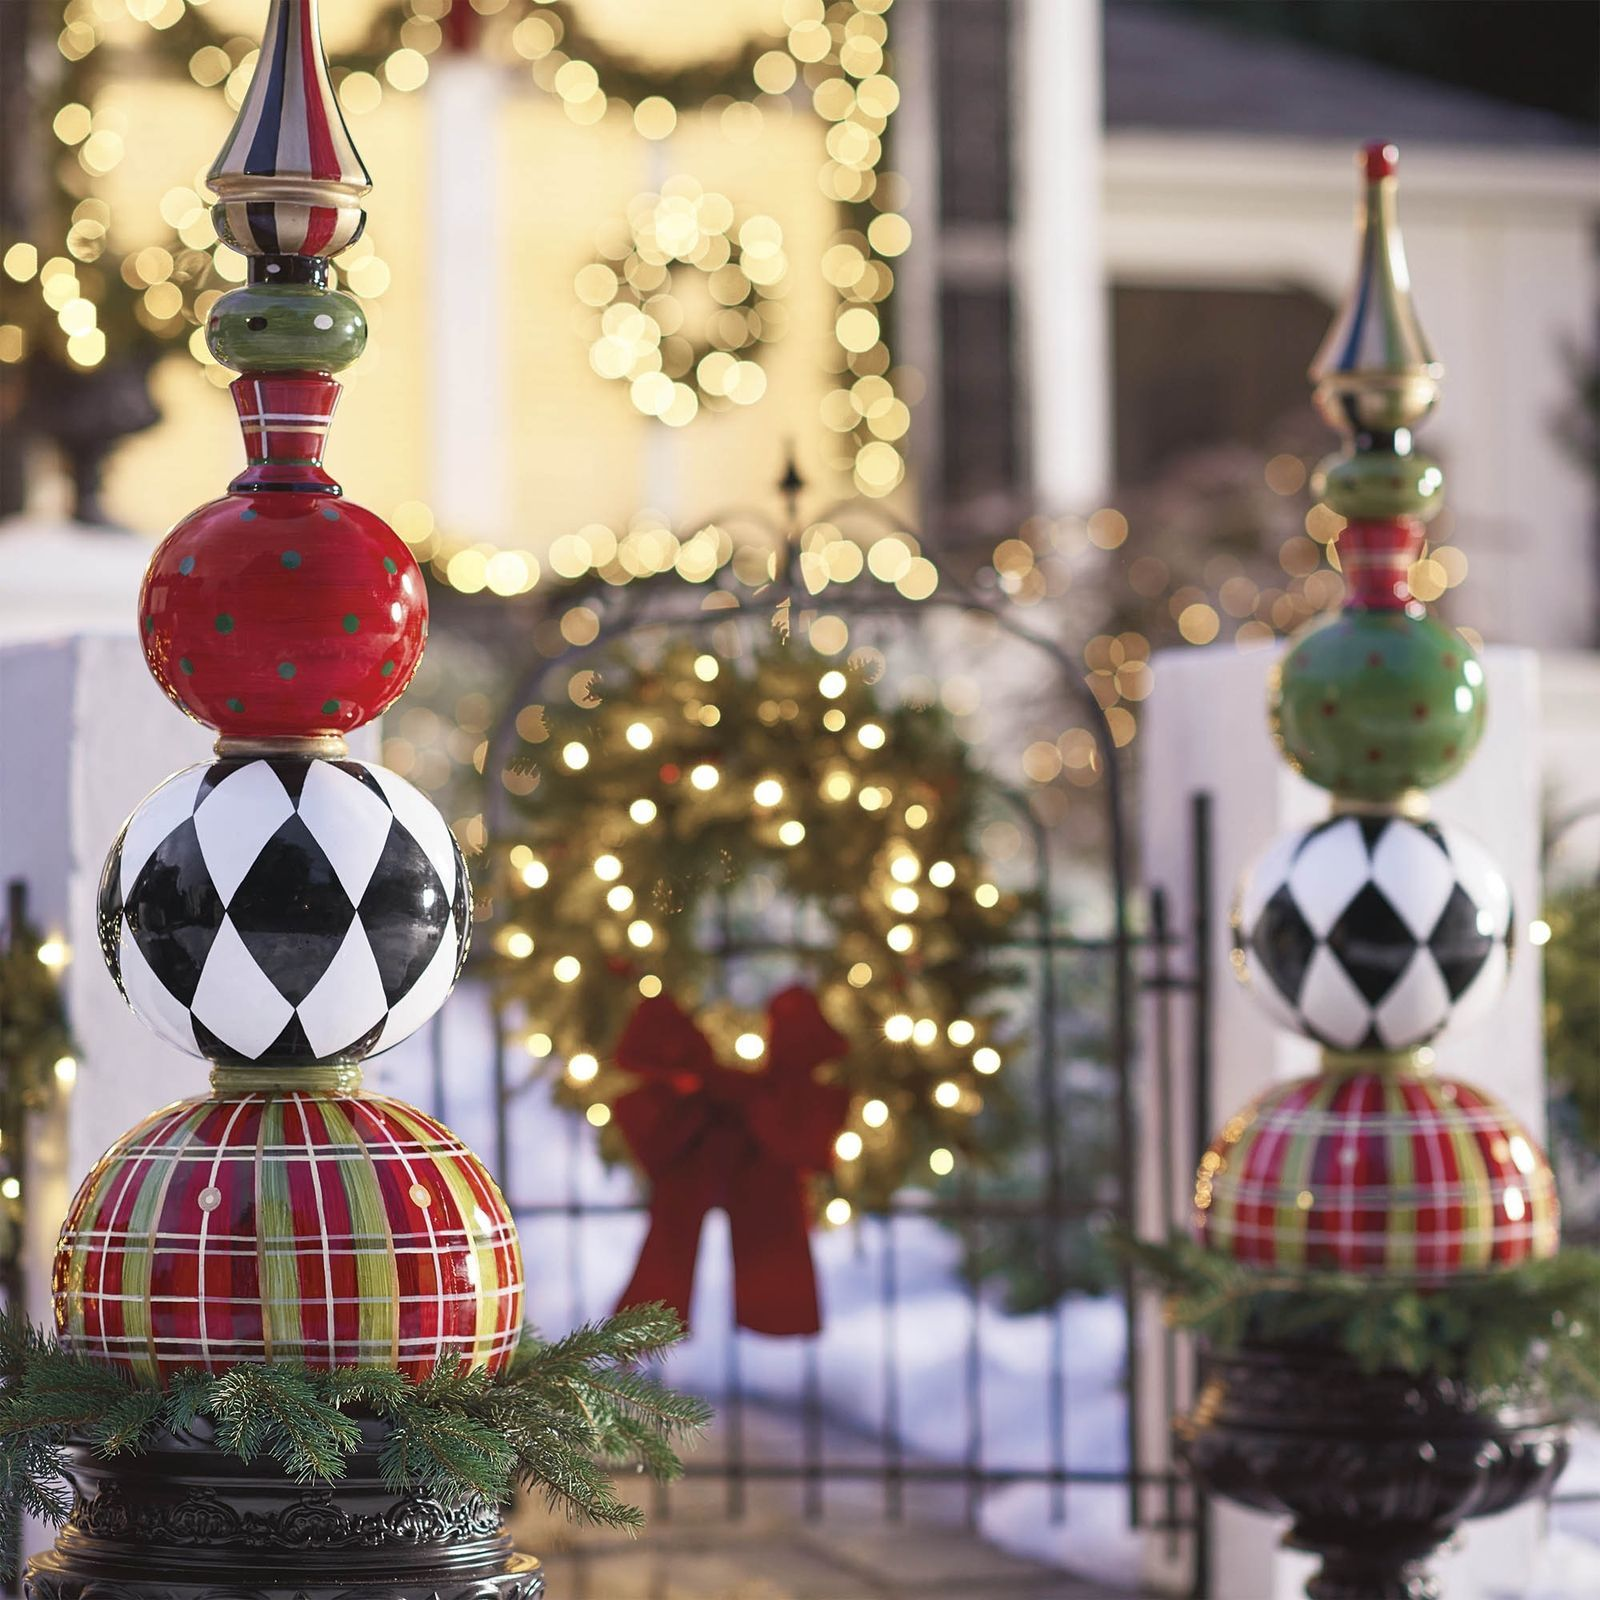 13 outdoor christmas decorations that are simply magical